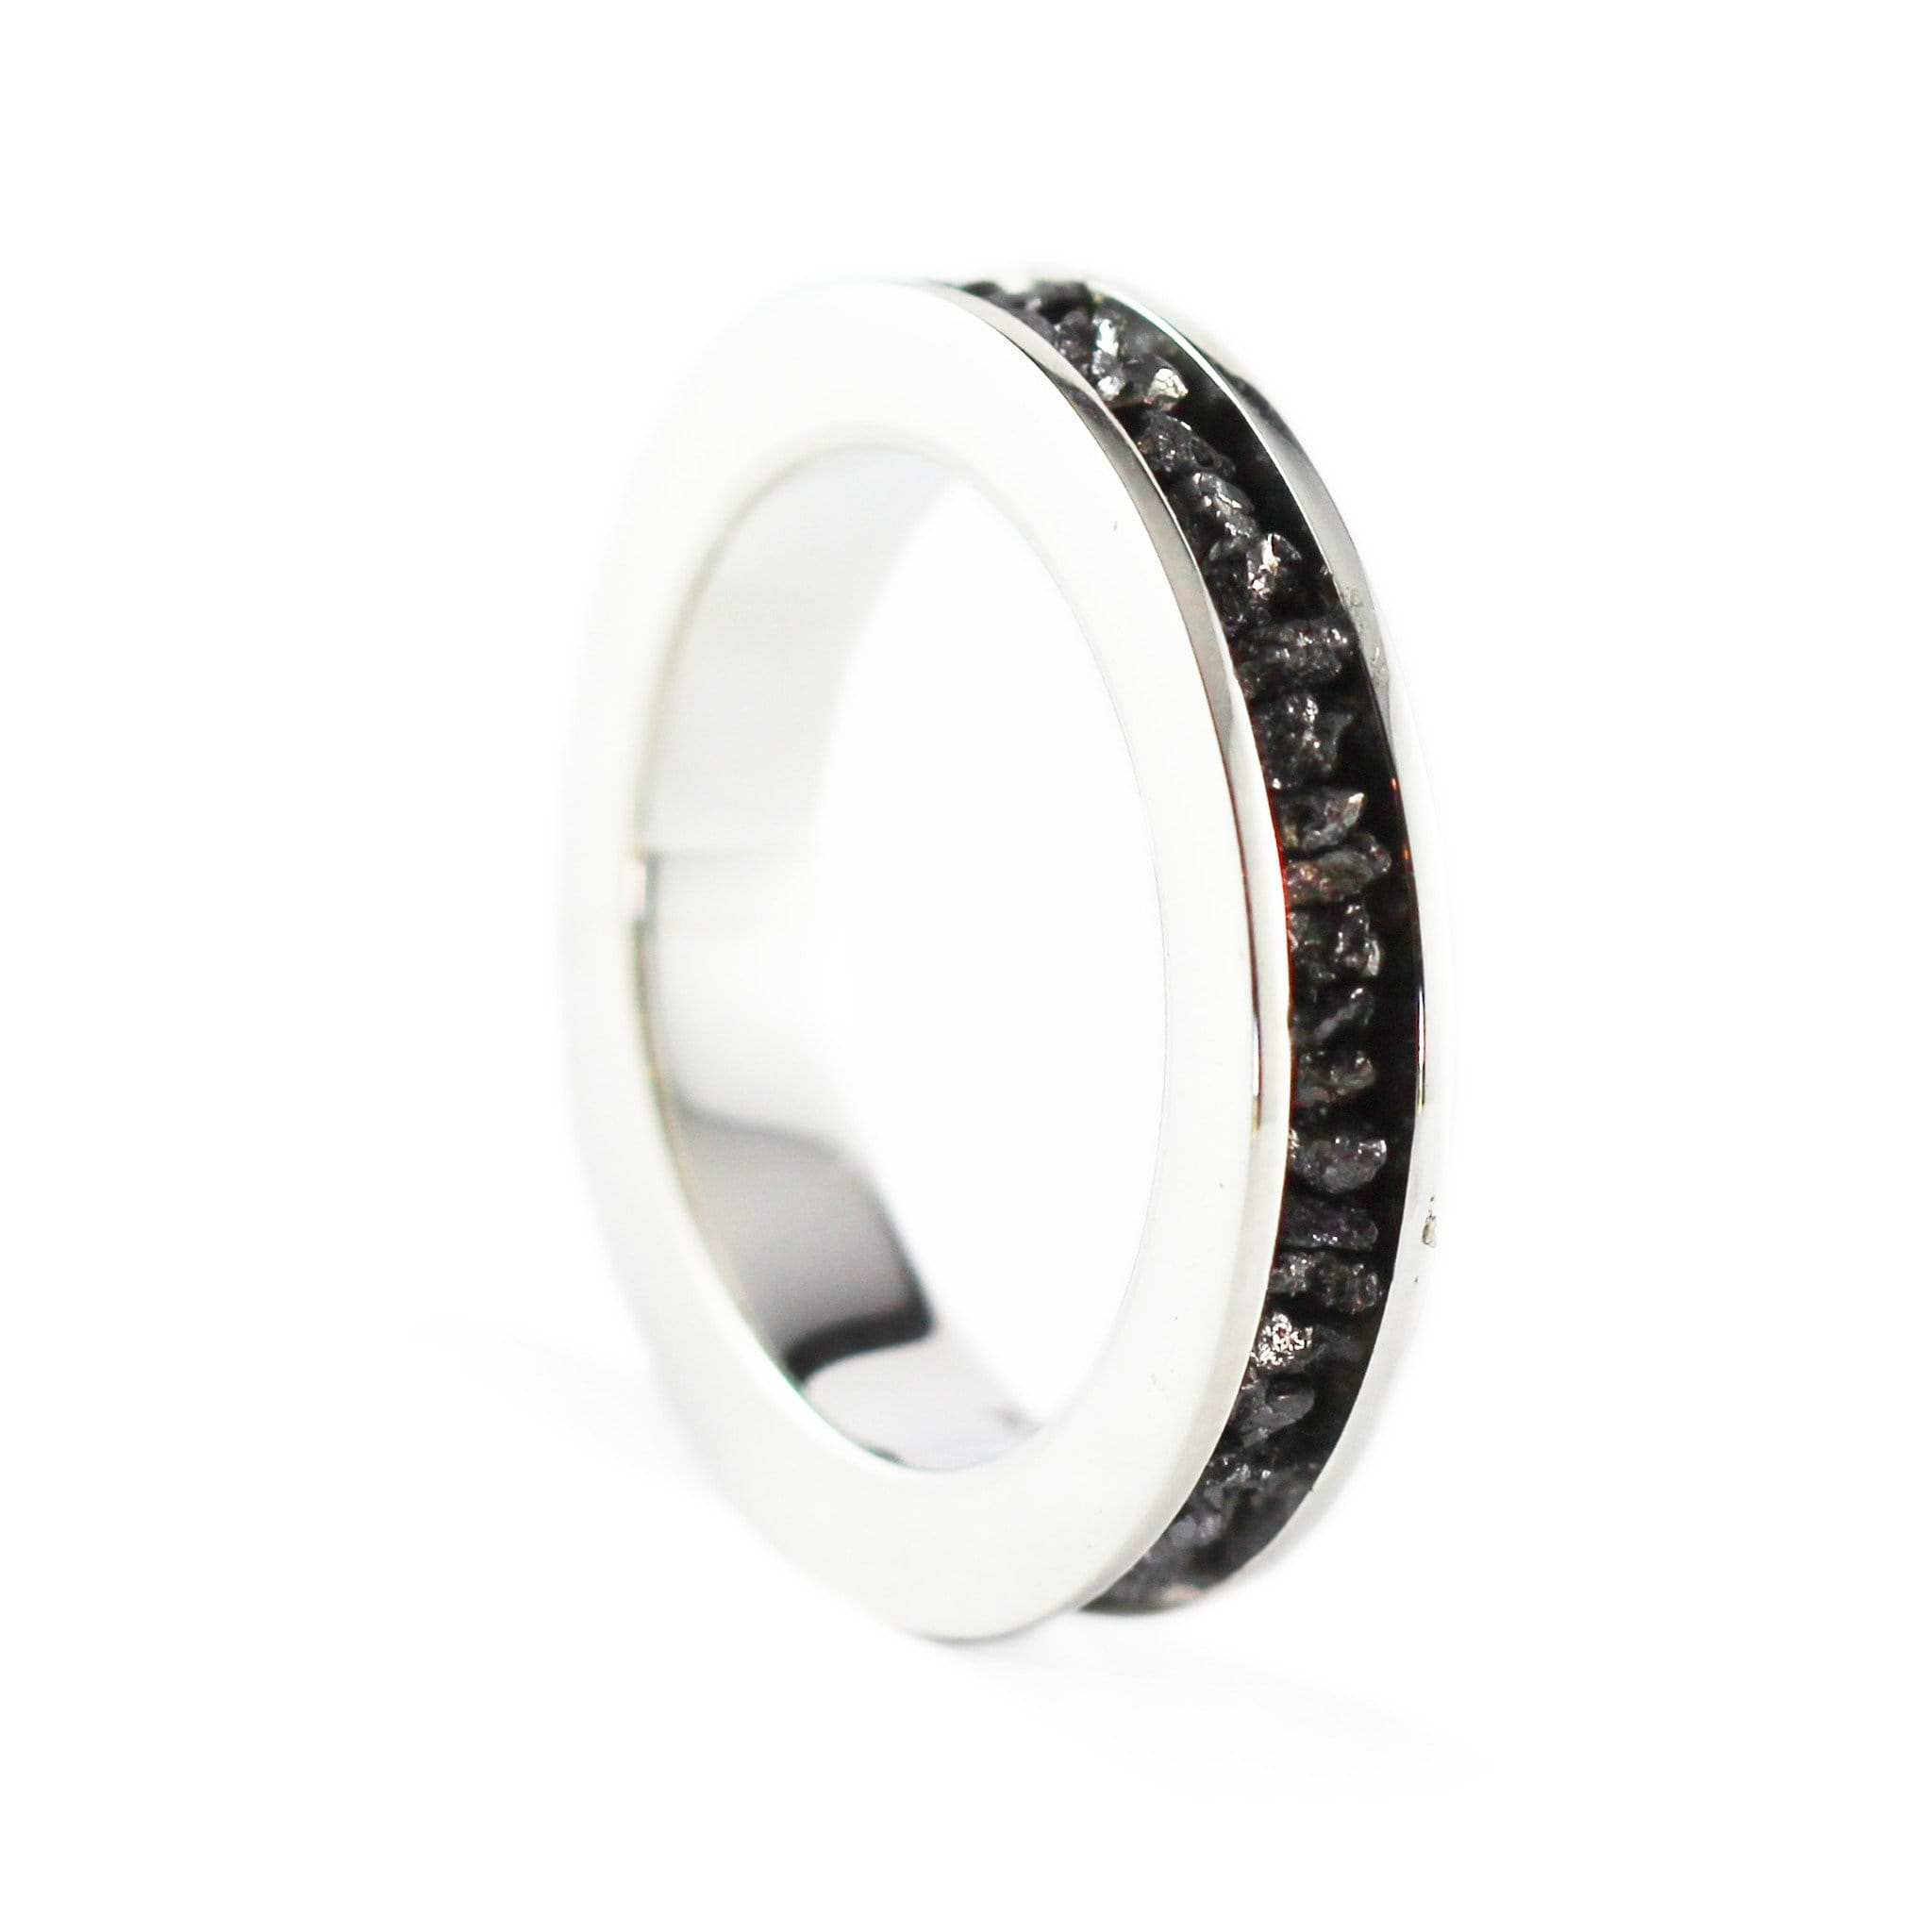 orders free on black band laser stainless white greek jewelry overstock ring watches rings product over steel men s key etched mens shipping